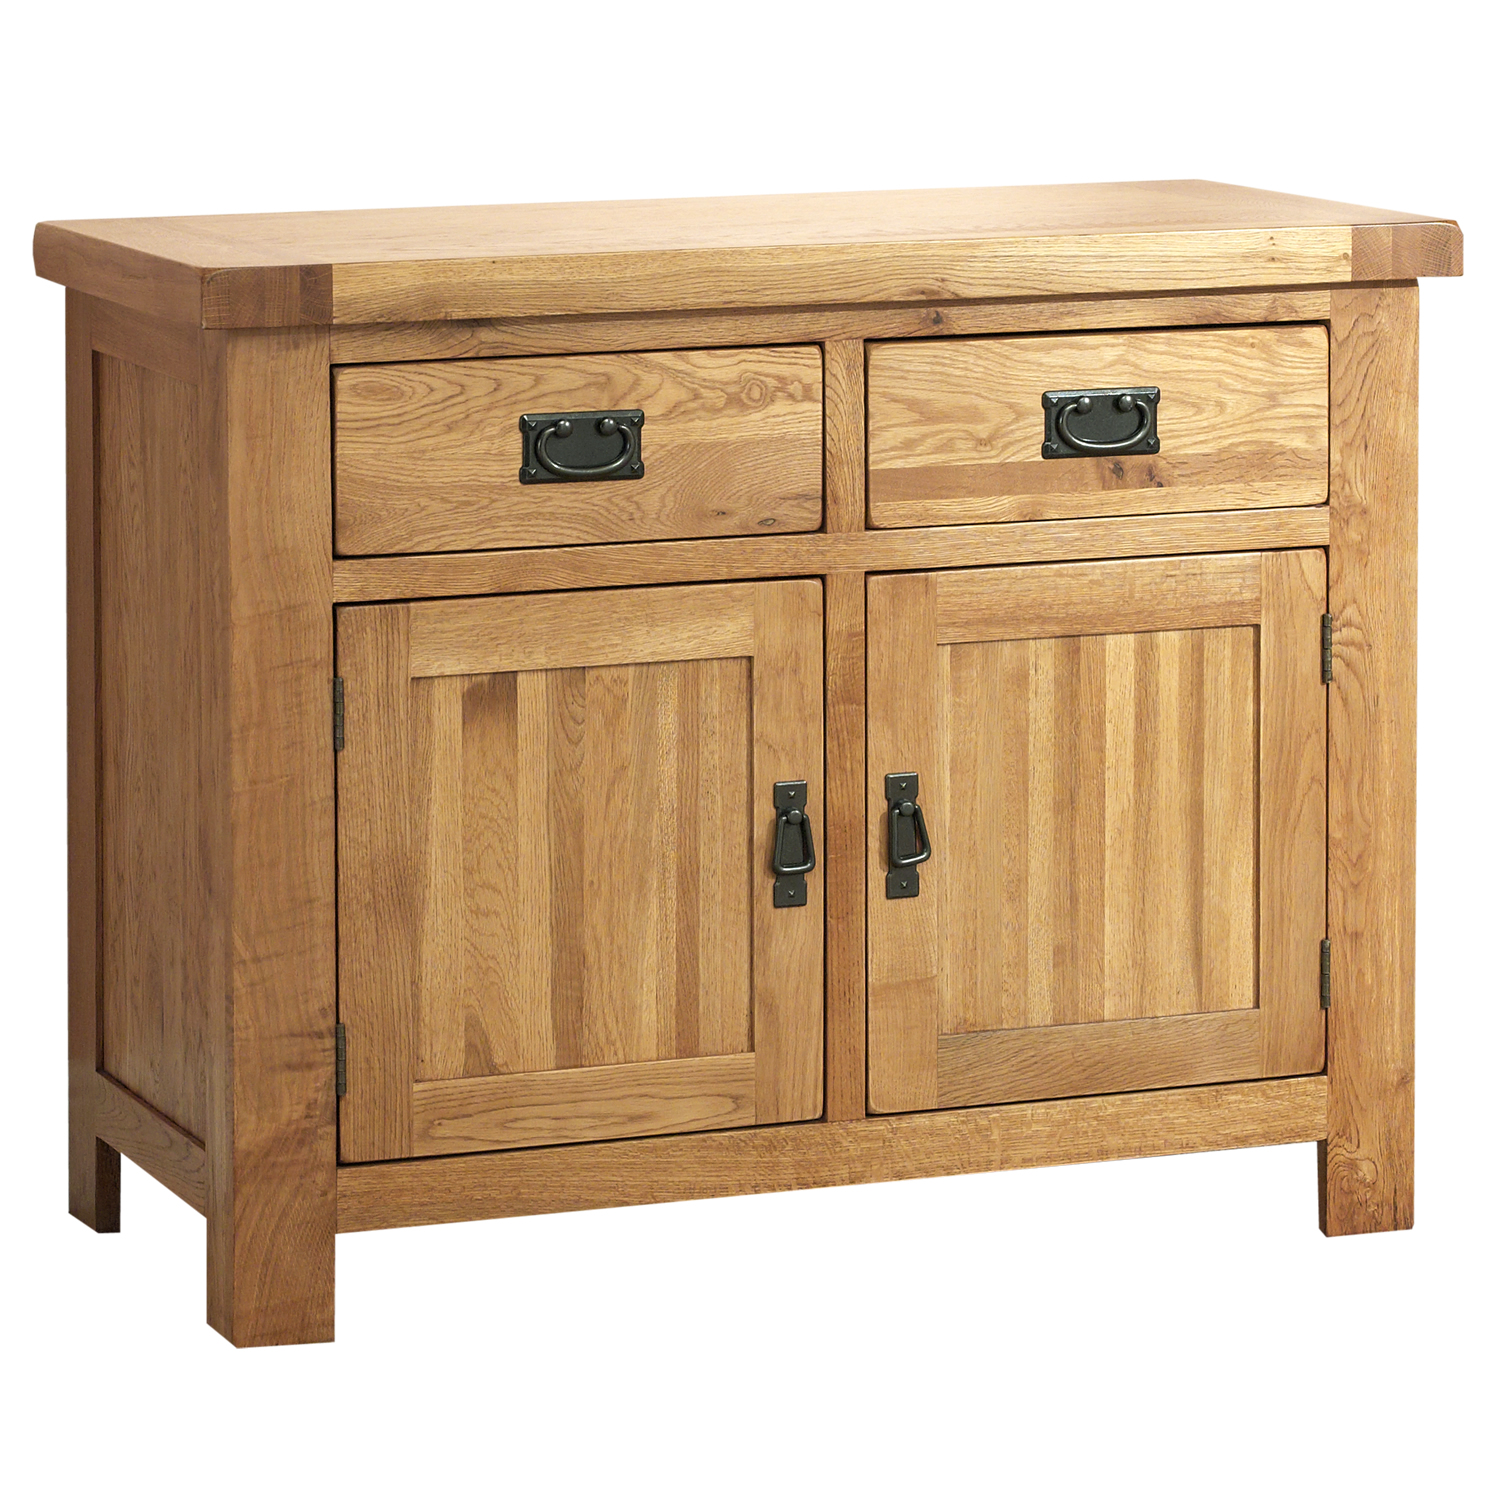 solid oak sideboard is your first choice living room furniture hgnv. Black Bedroom Furniture Sets. Home Design Ideas